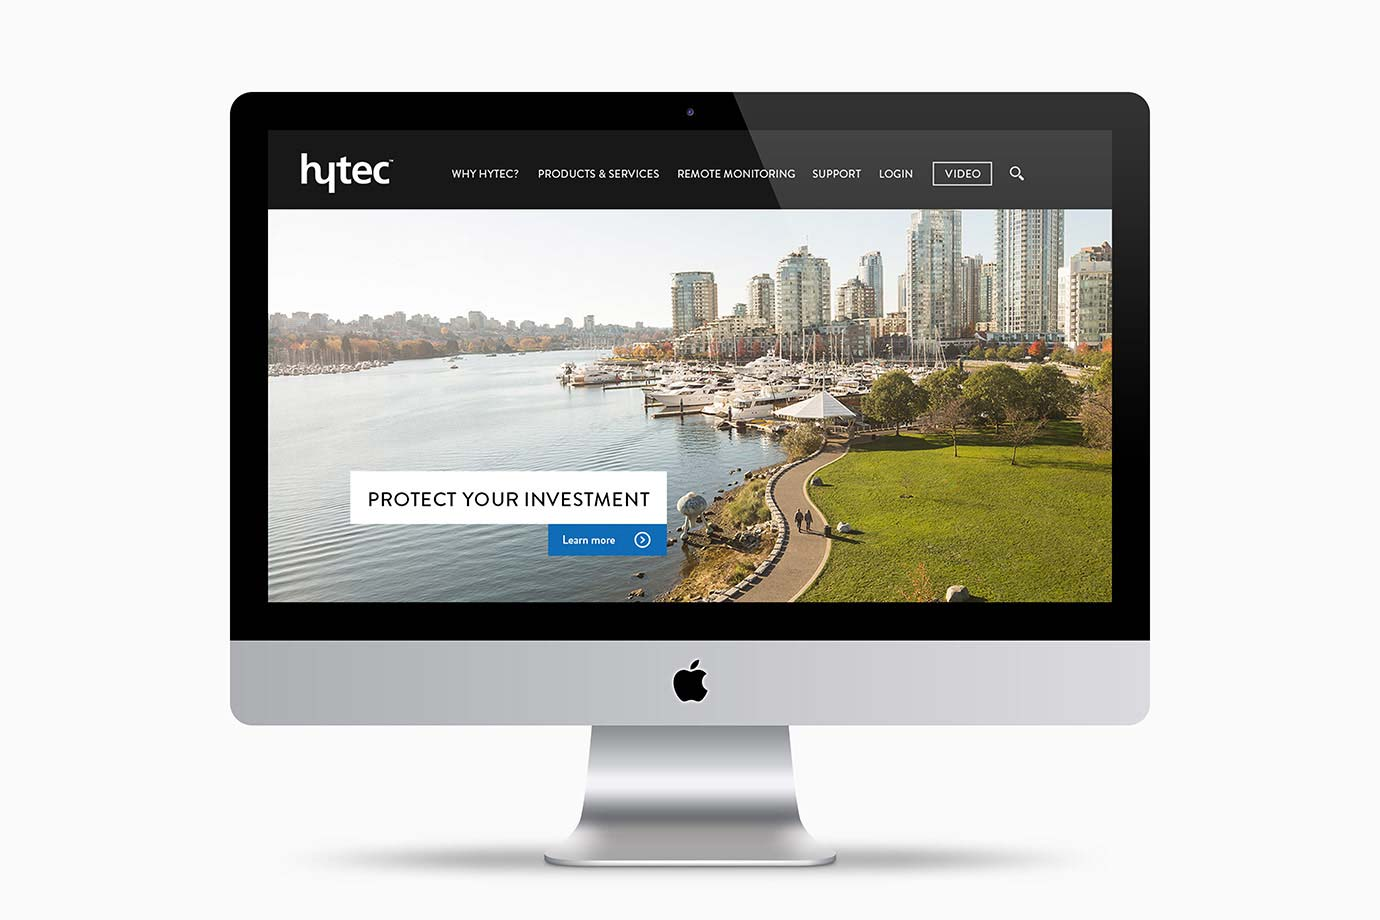 Anthony Hooper Graphic Design - Hytec Water Management Ltd. - Vancouver, BC